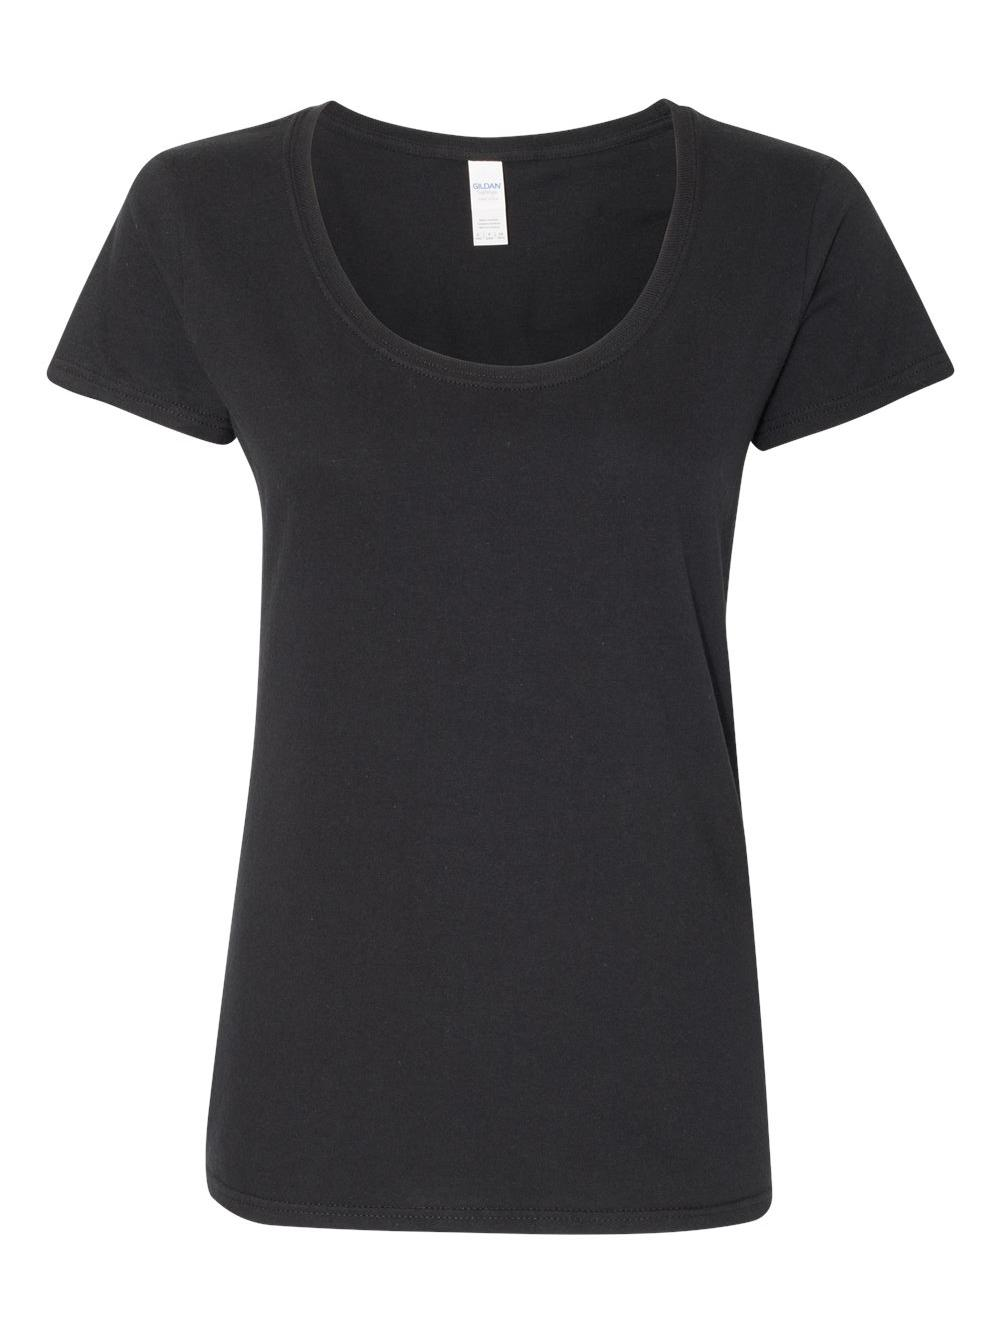 Gildan-Softstyle-Women-039-s-Deep-Scoopneck-T-Shirt-64550L thumbnail 6